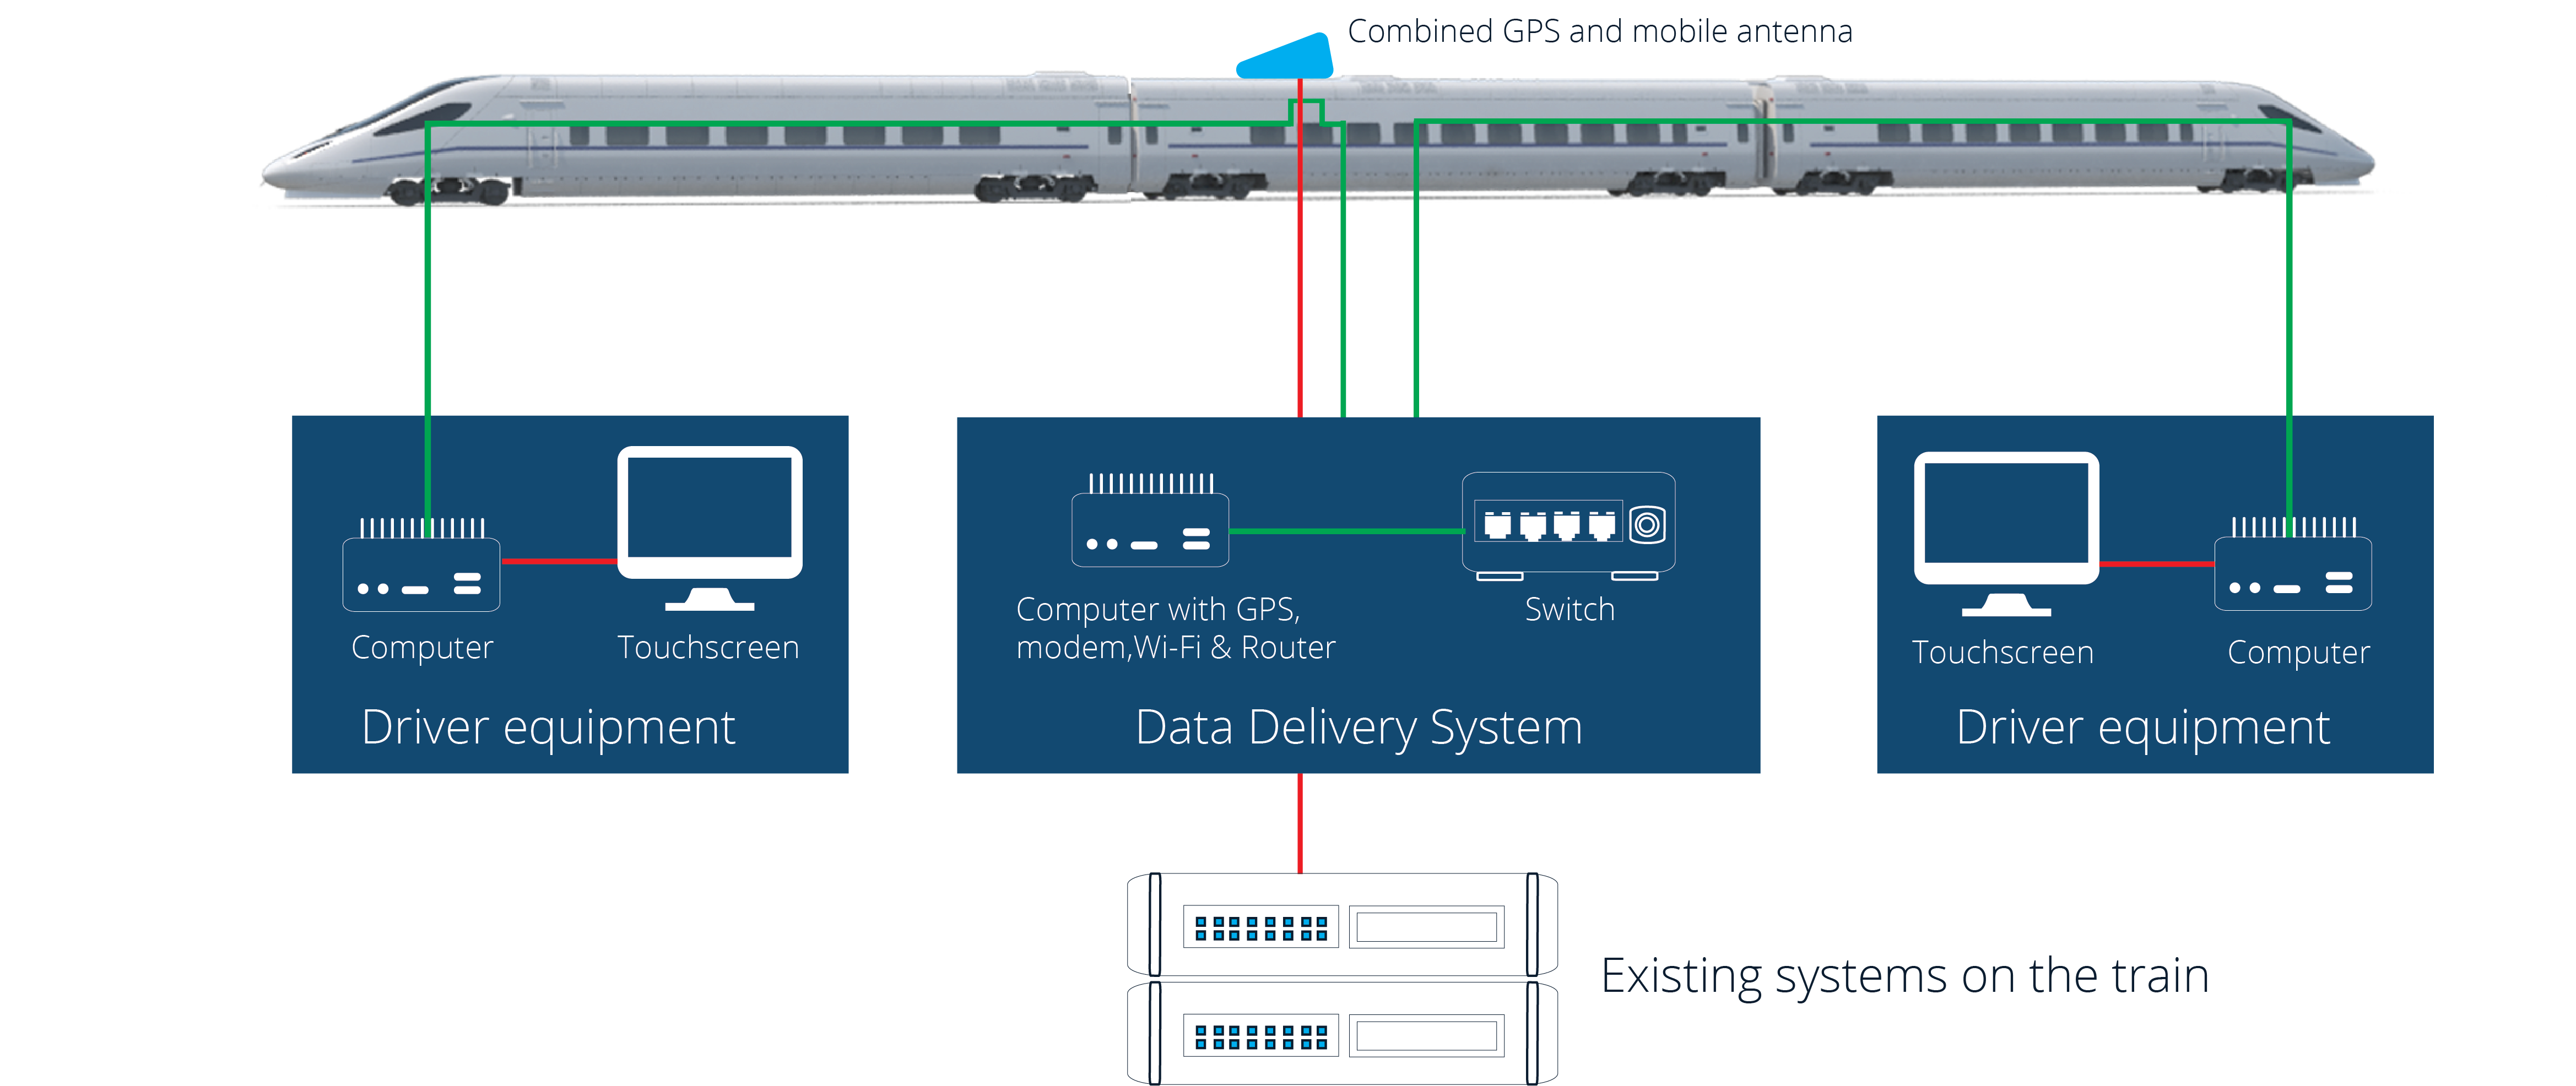 Driver Advisory System: Figure showing the location and basic function of the system modules in the train compartments